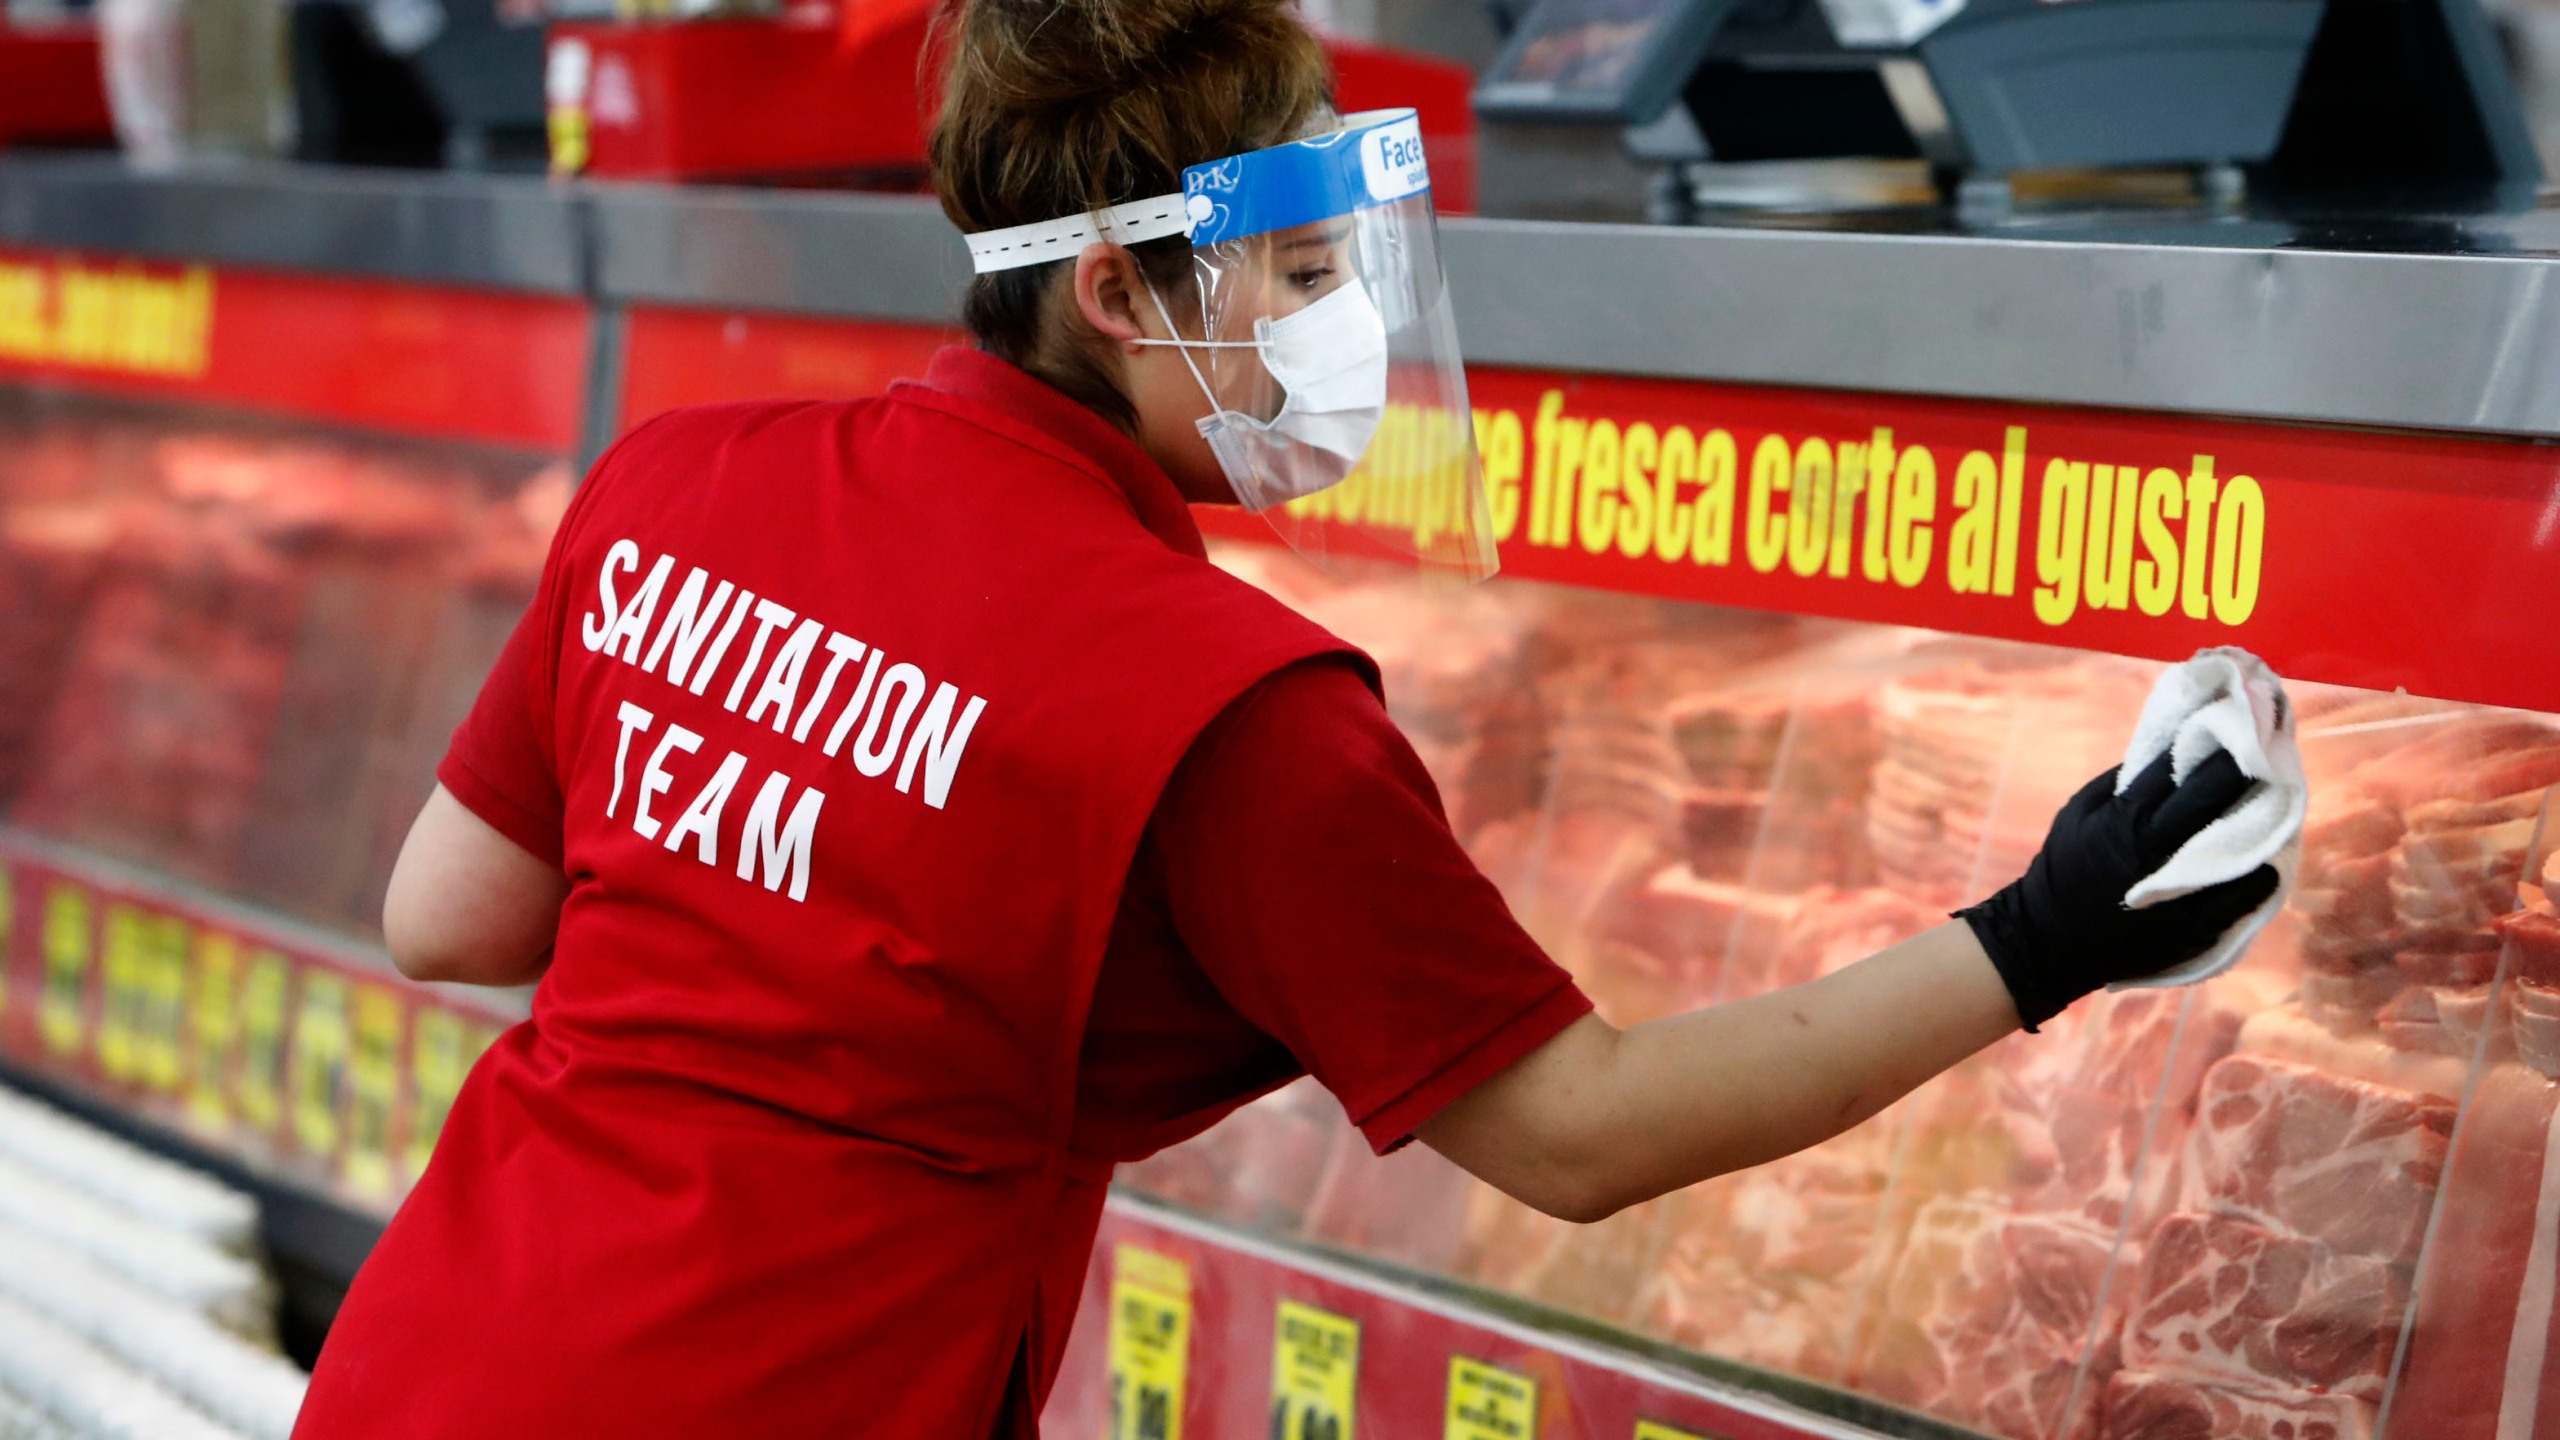 Amid concerns of the spread of COVID-19, Belia Alvarado wipes the meat counter display at El Rancho grocery store in Dallas, Monday, April 13, 2020. (AP Photo/LM Otero)